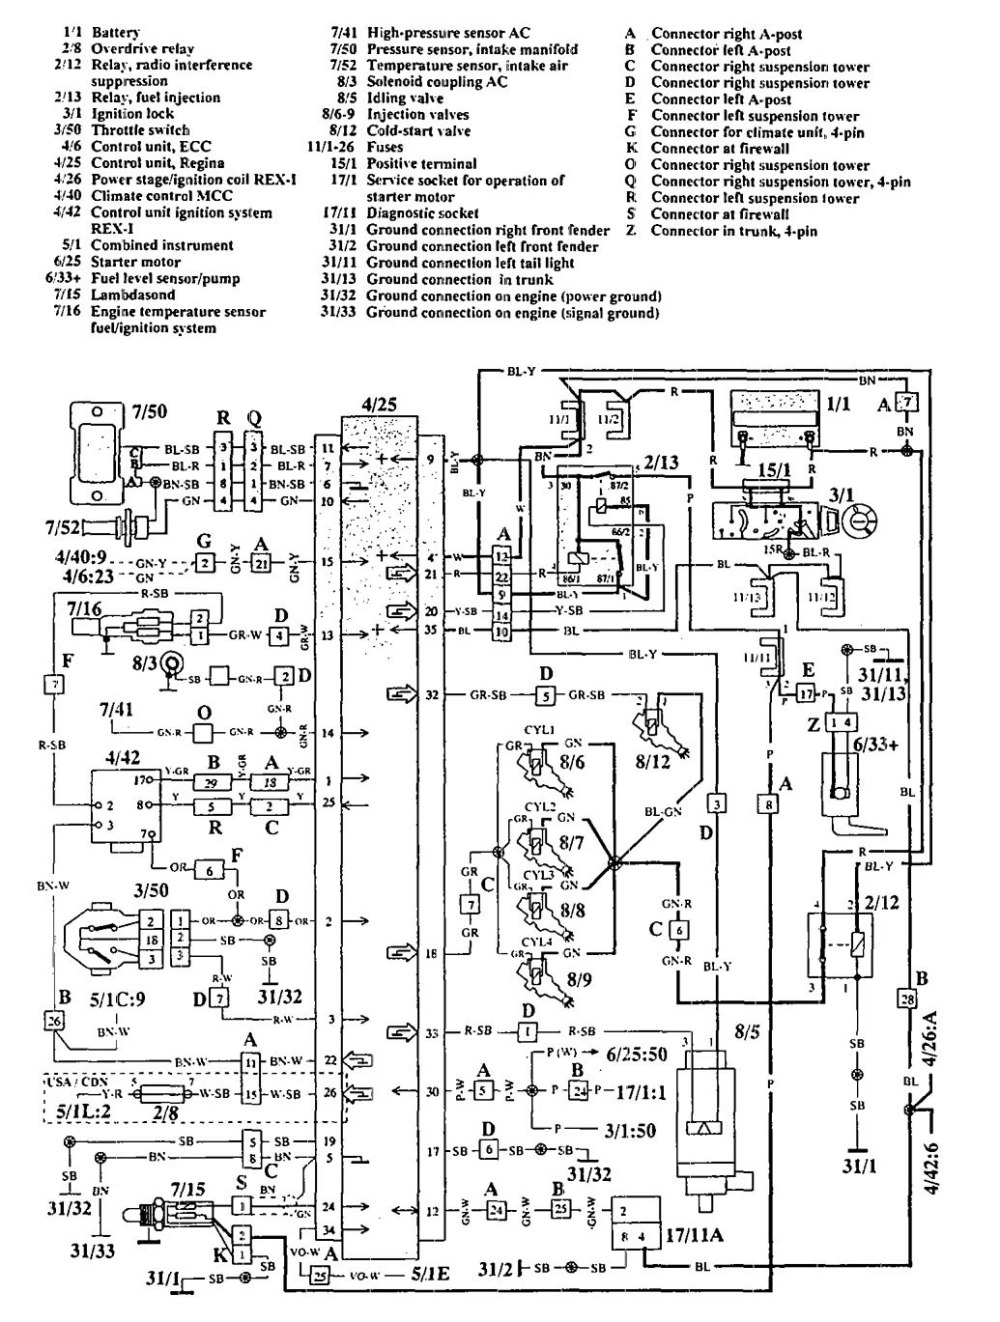 medium resolution of volvo 940 electrical diagram wiring diagram online rh 2 51 shareplm de 1991 volvo 240 tail light wiring diagram 1993 volvo 940 ignition module